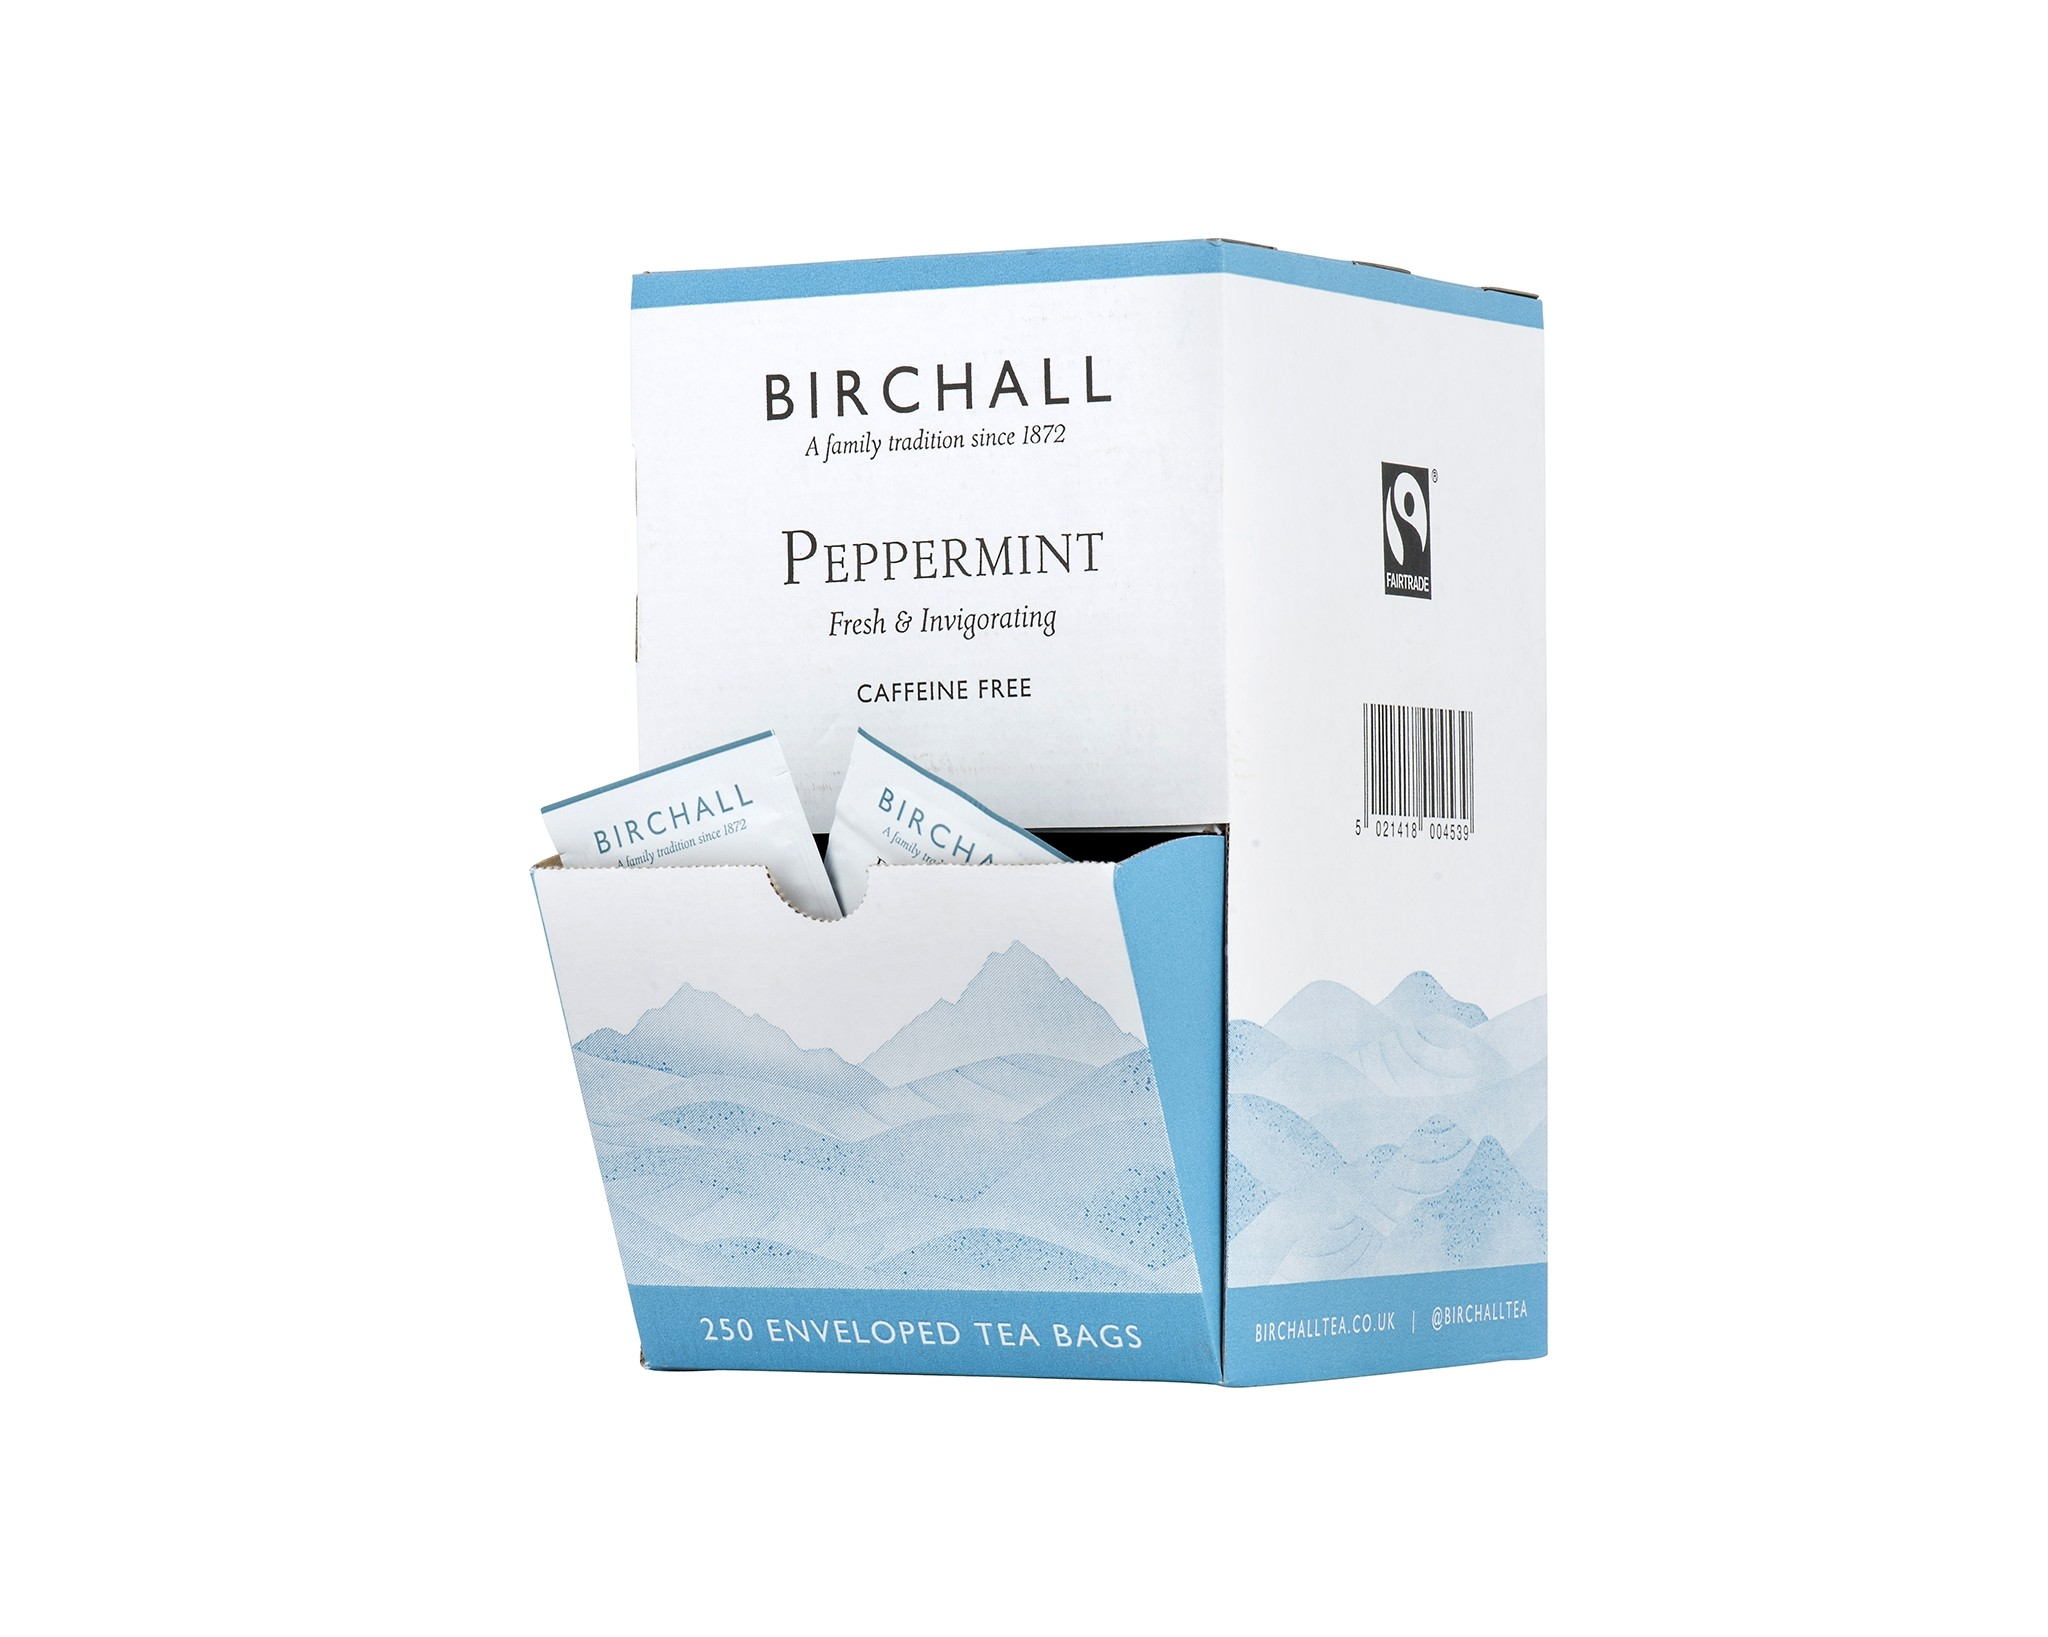 Birchall Peppermint 250 Envelopes (1 Units)